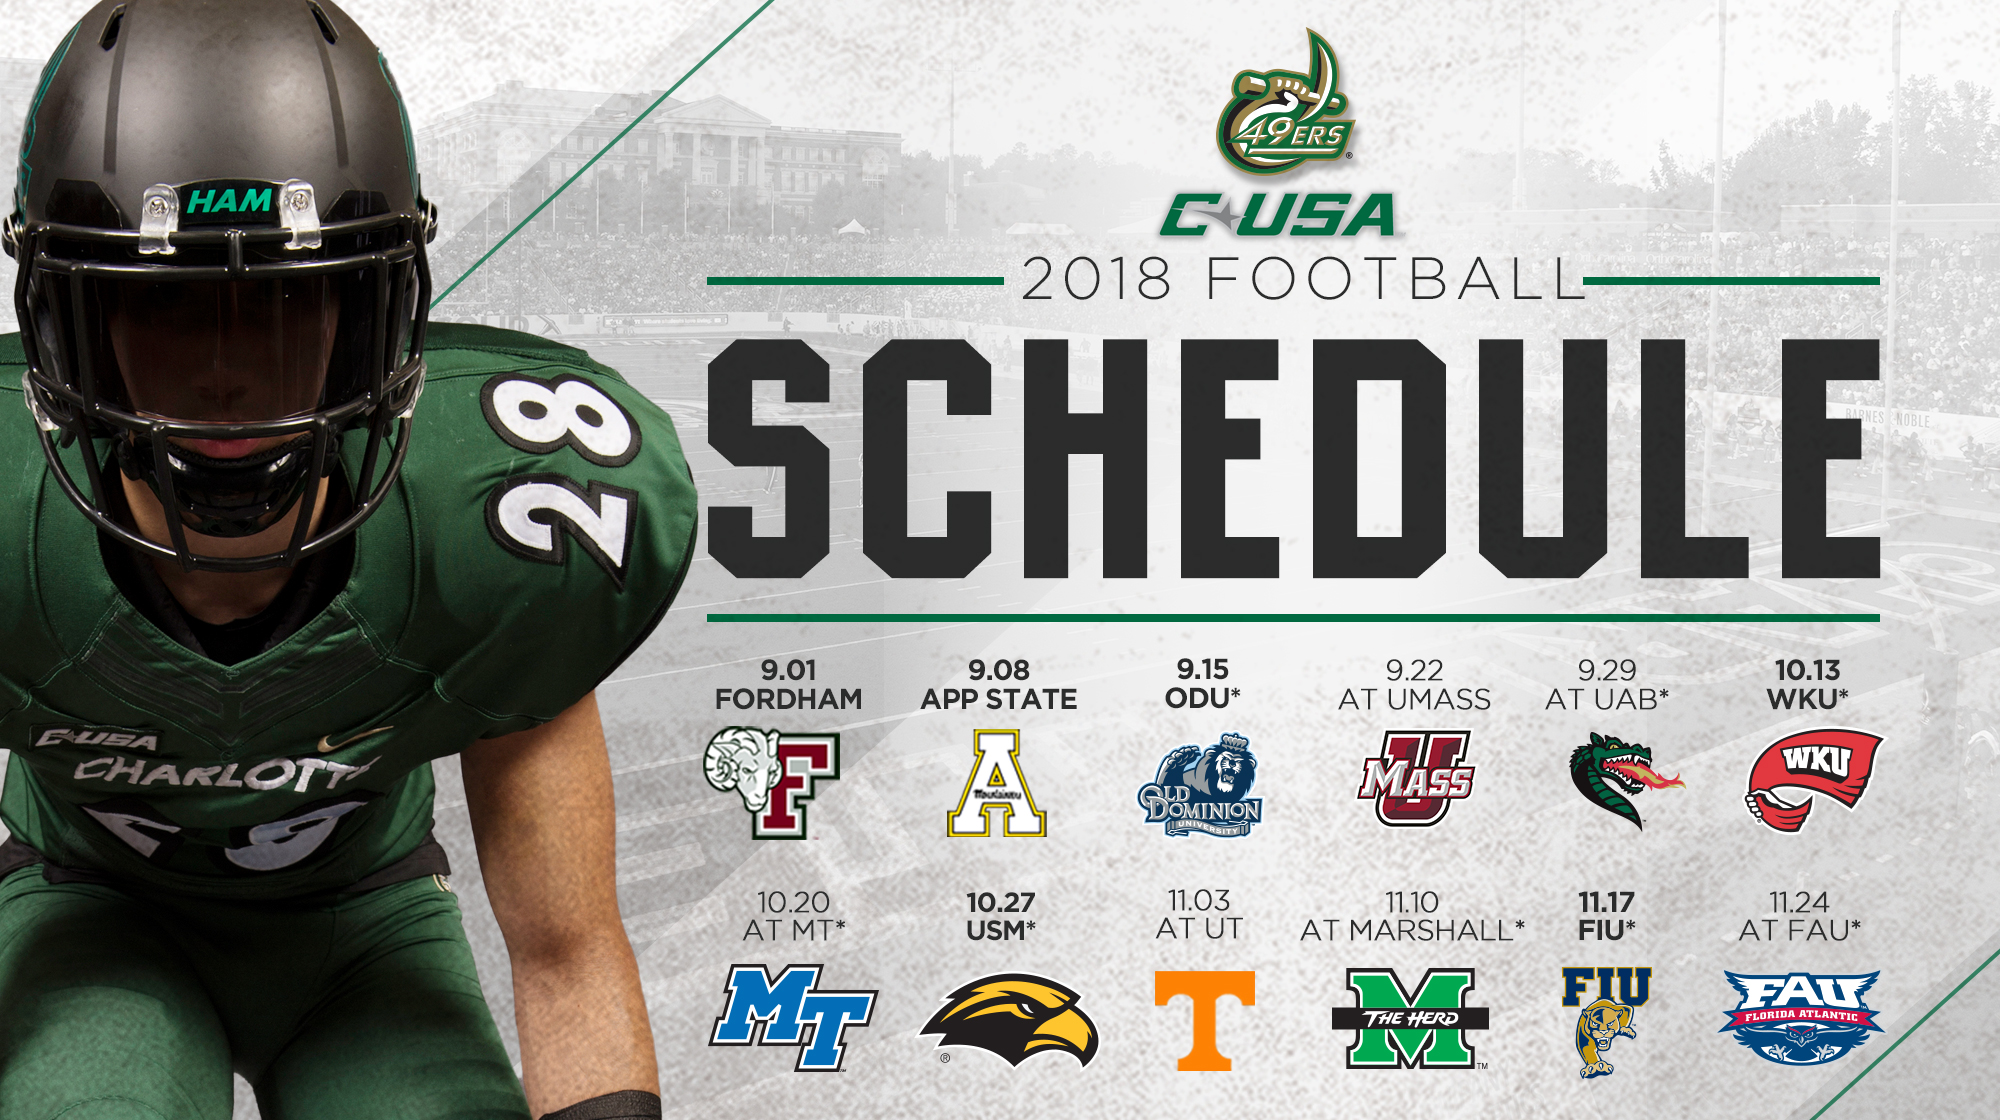 eight bowl teams highlight 2018 football slate - unc charlotte athletics